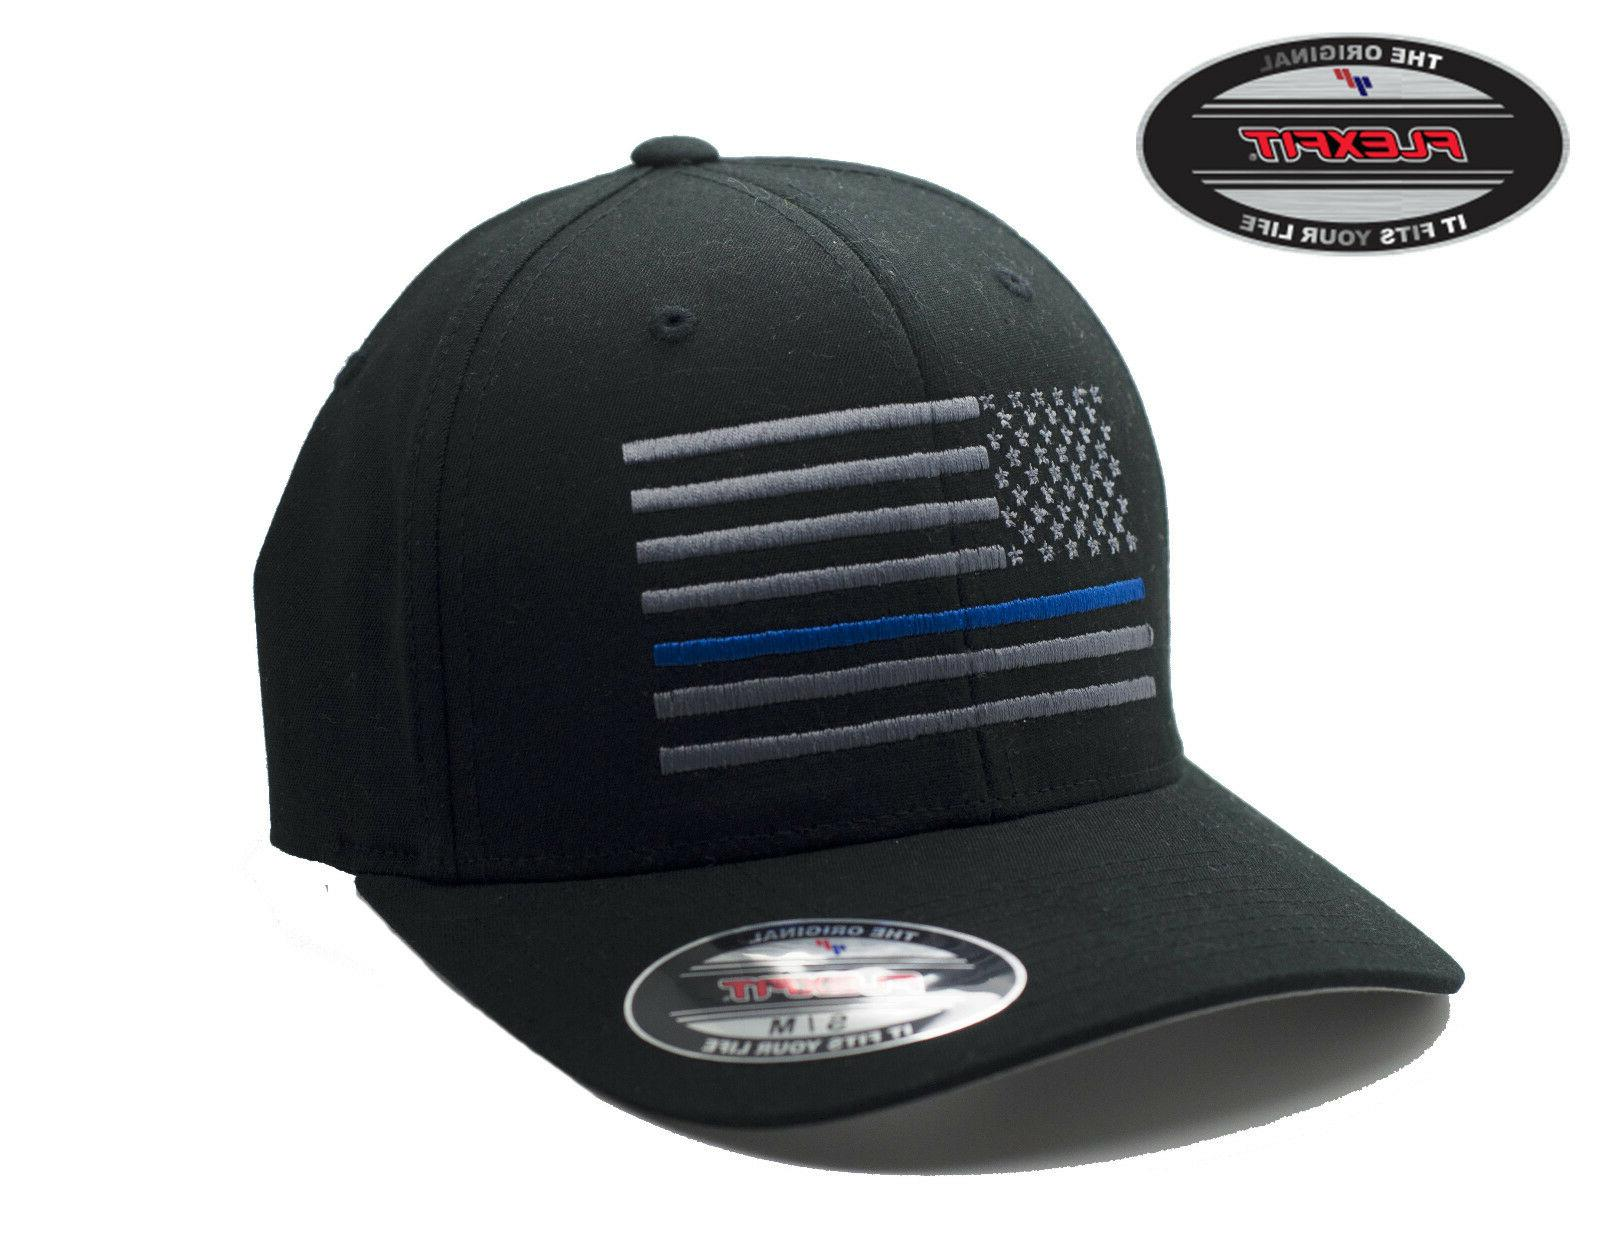 NEW American Thin Blue Line Flag FlexFit # 5001 Black Hat -